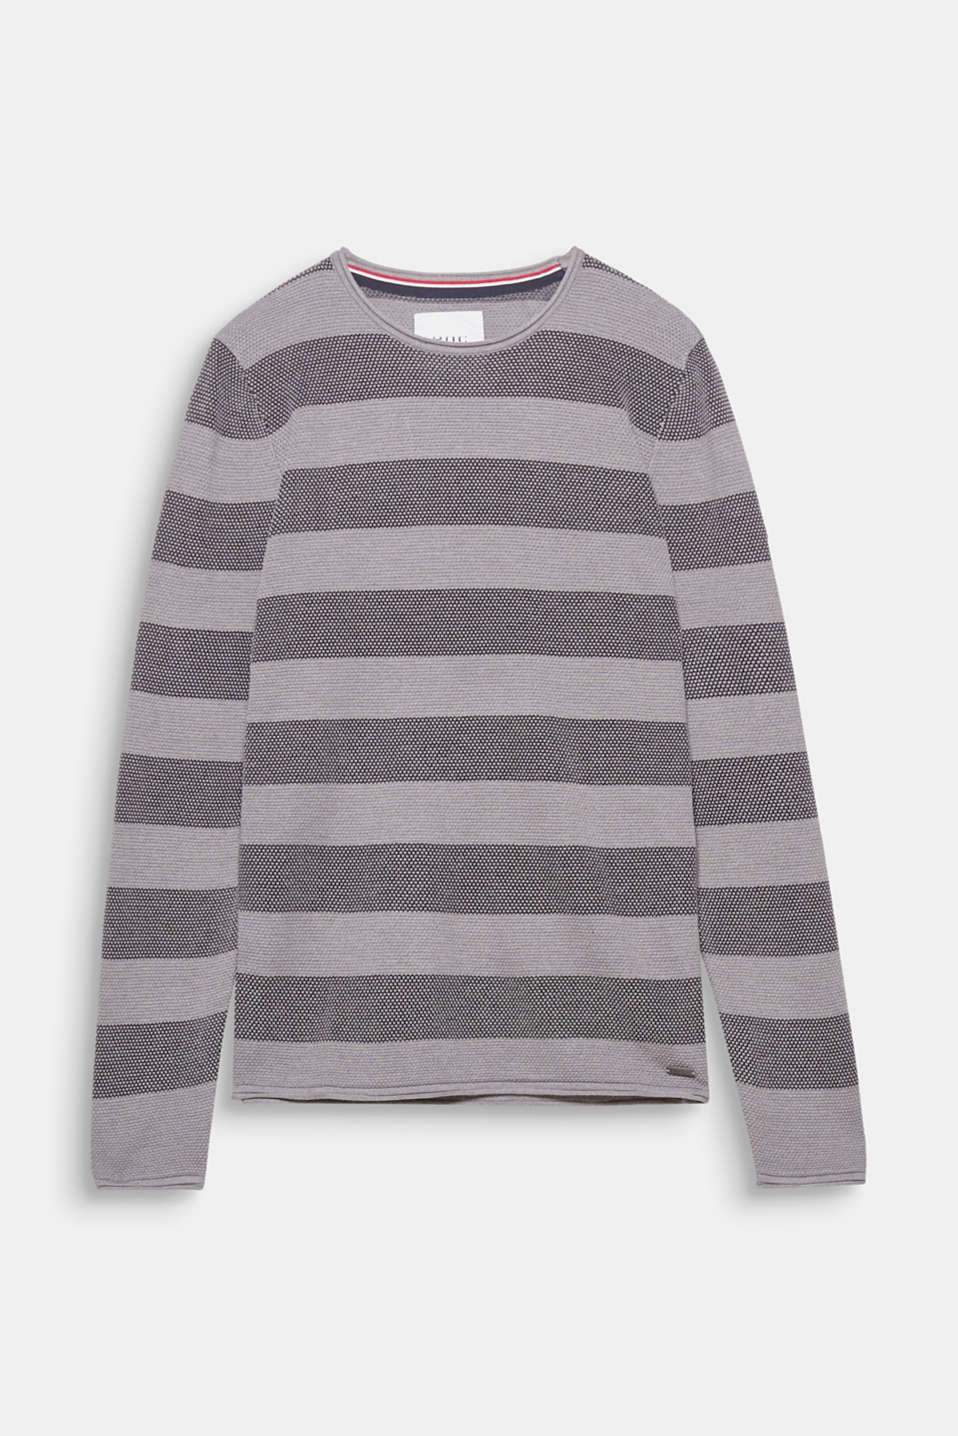 This textured jumper in blended cotton is a sporty basic for your wardrobe.